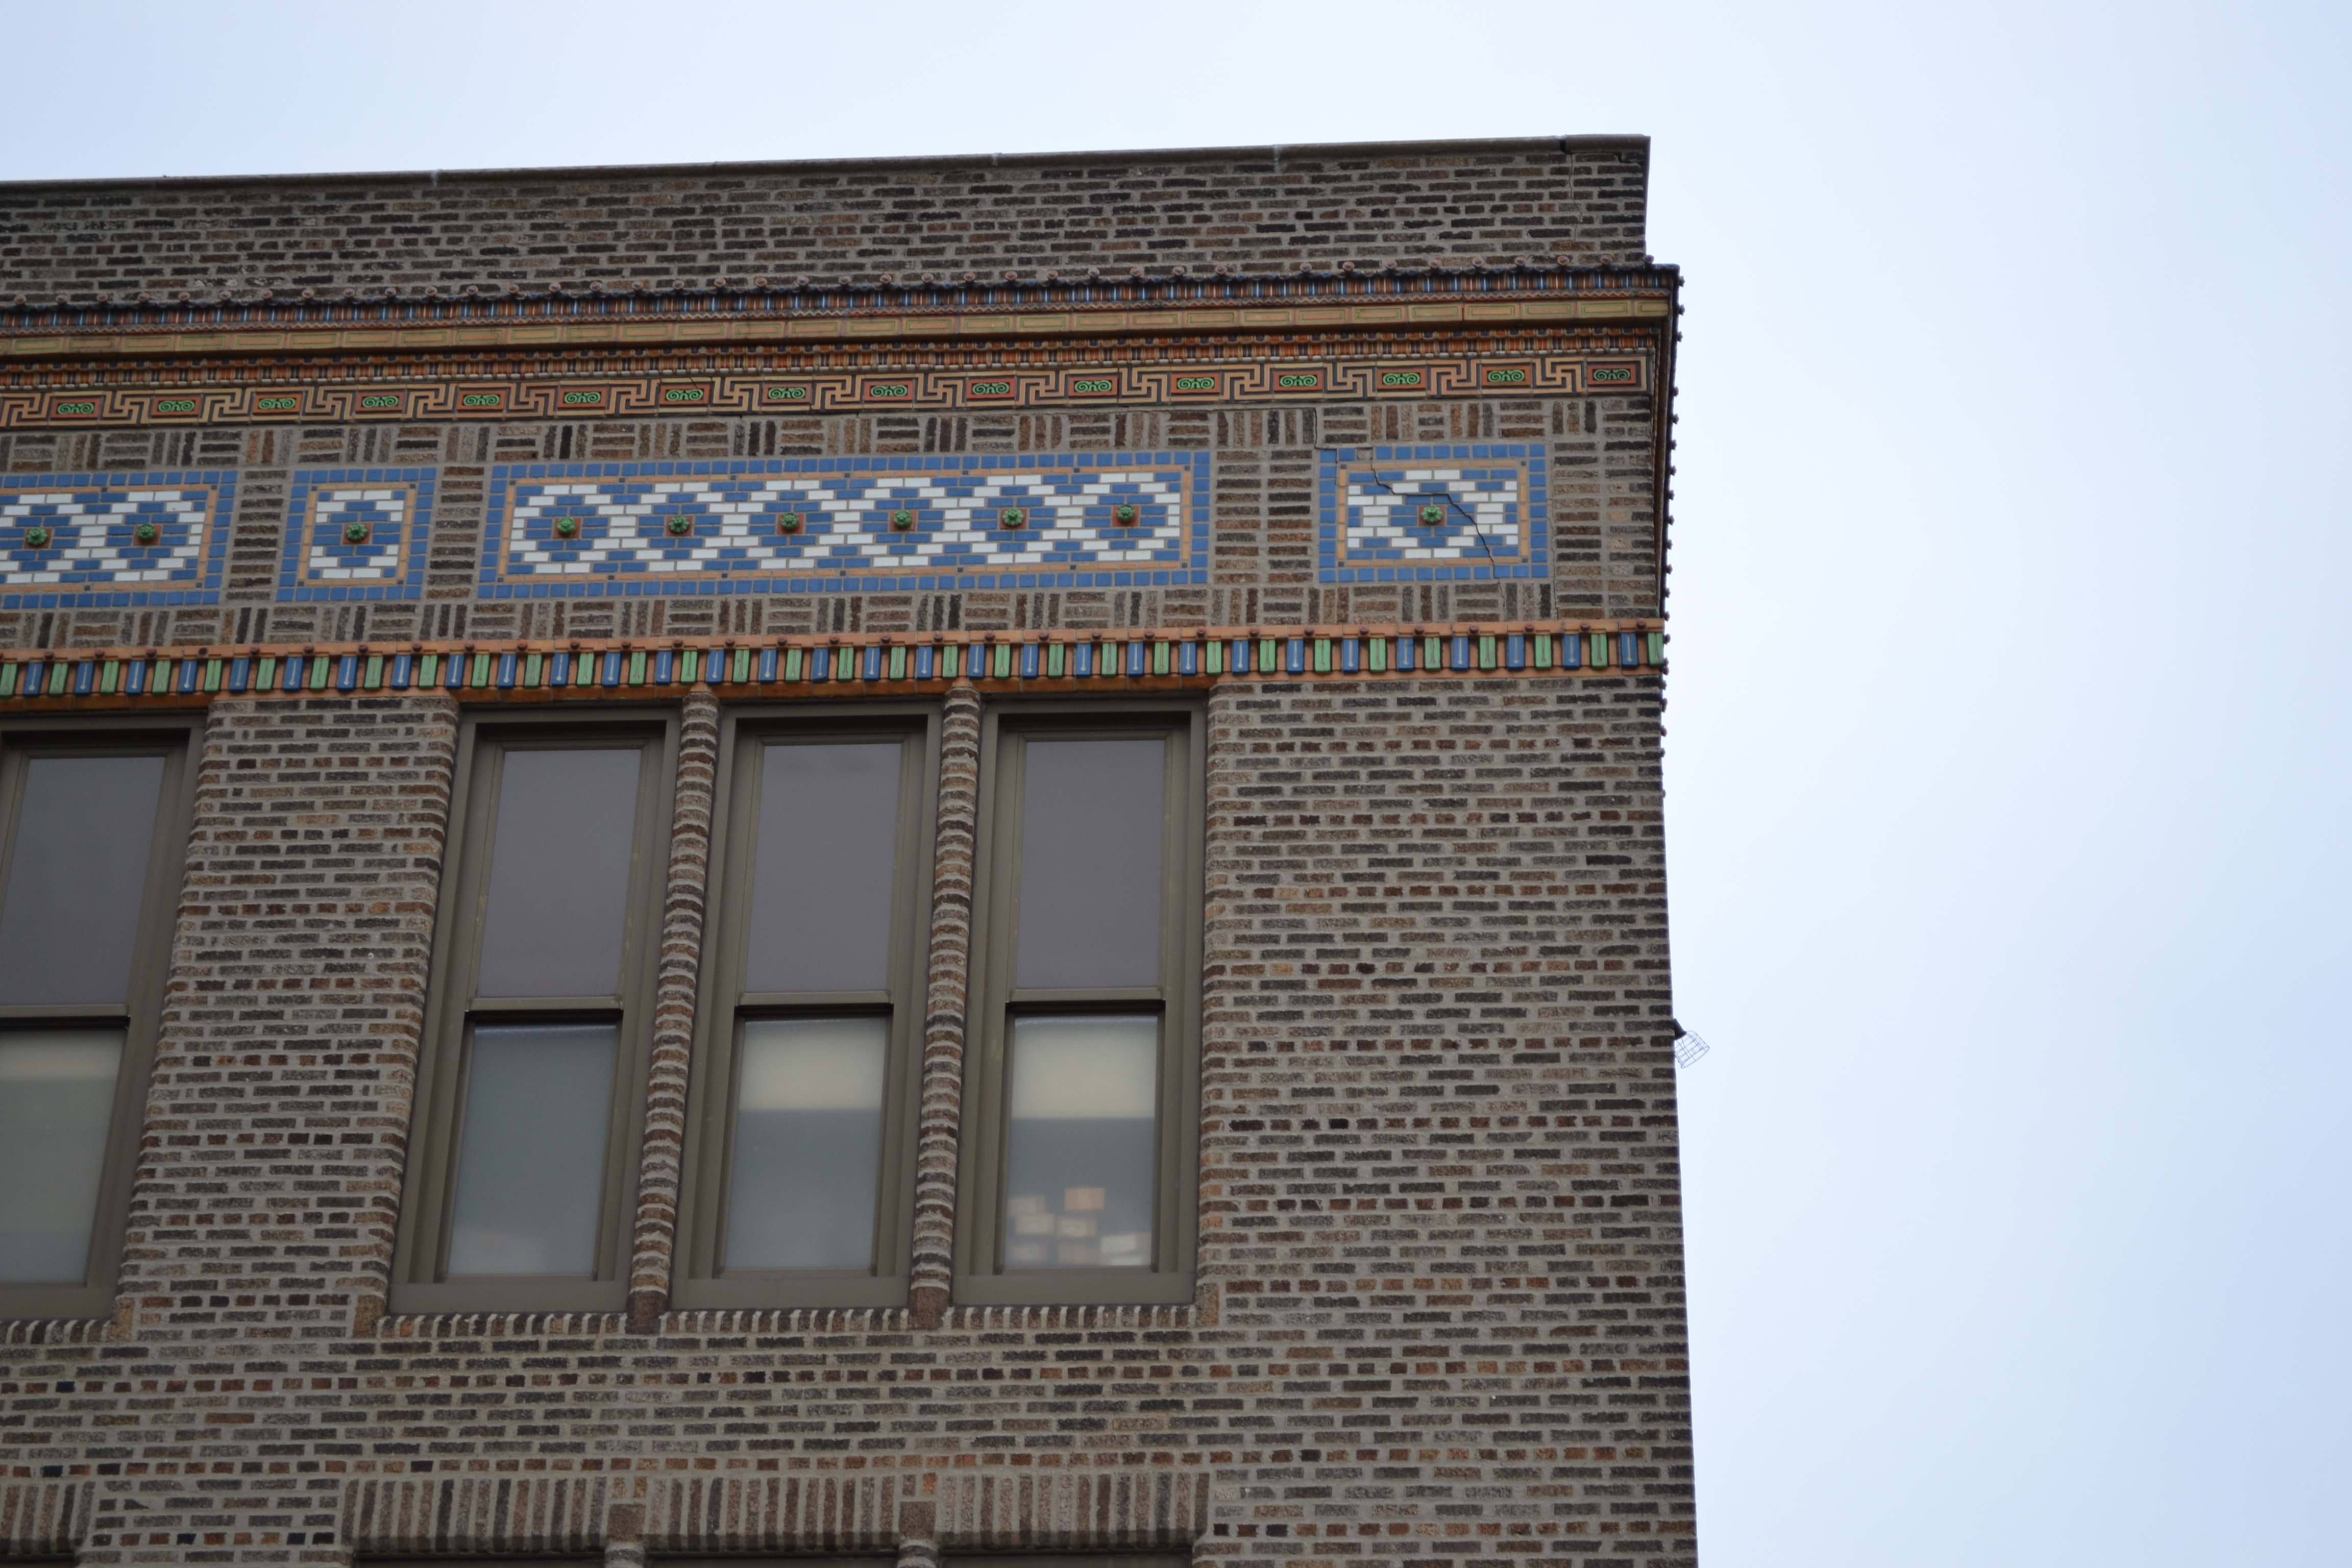 The design takes the decorative detail of the building's facade into account